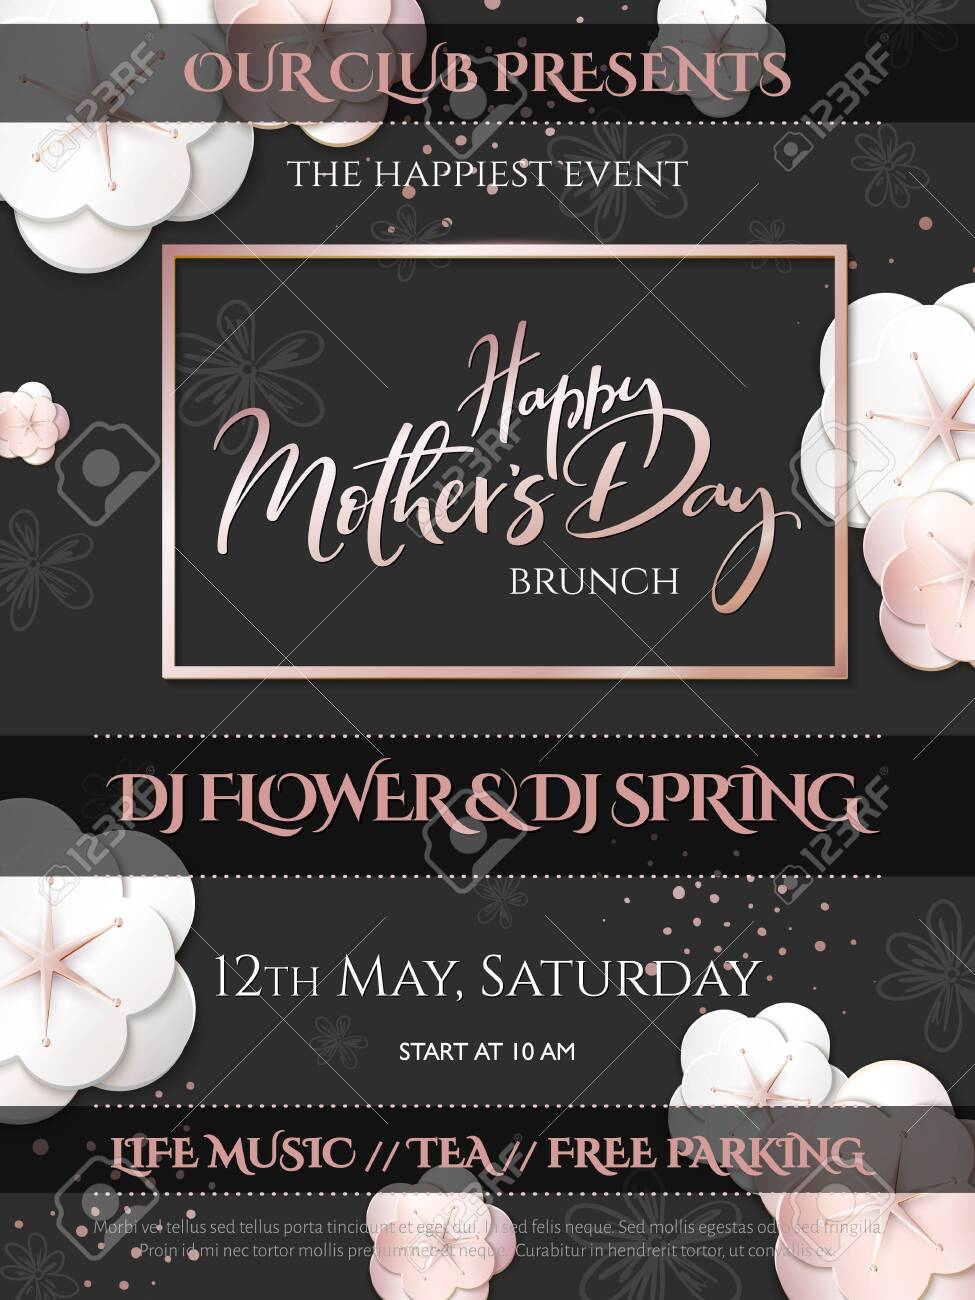 Vector illustration of mothers day invitation party poster template